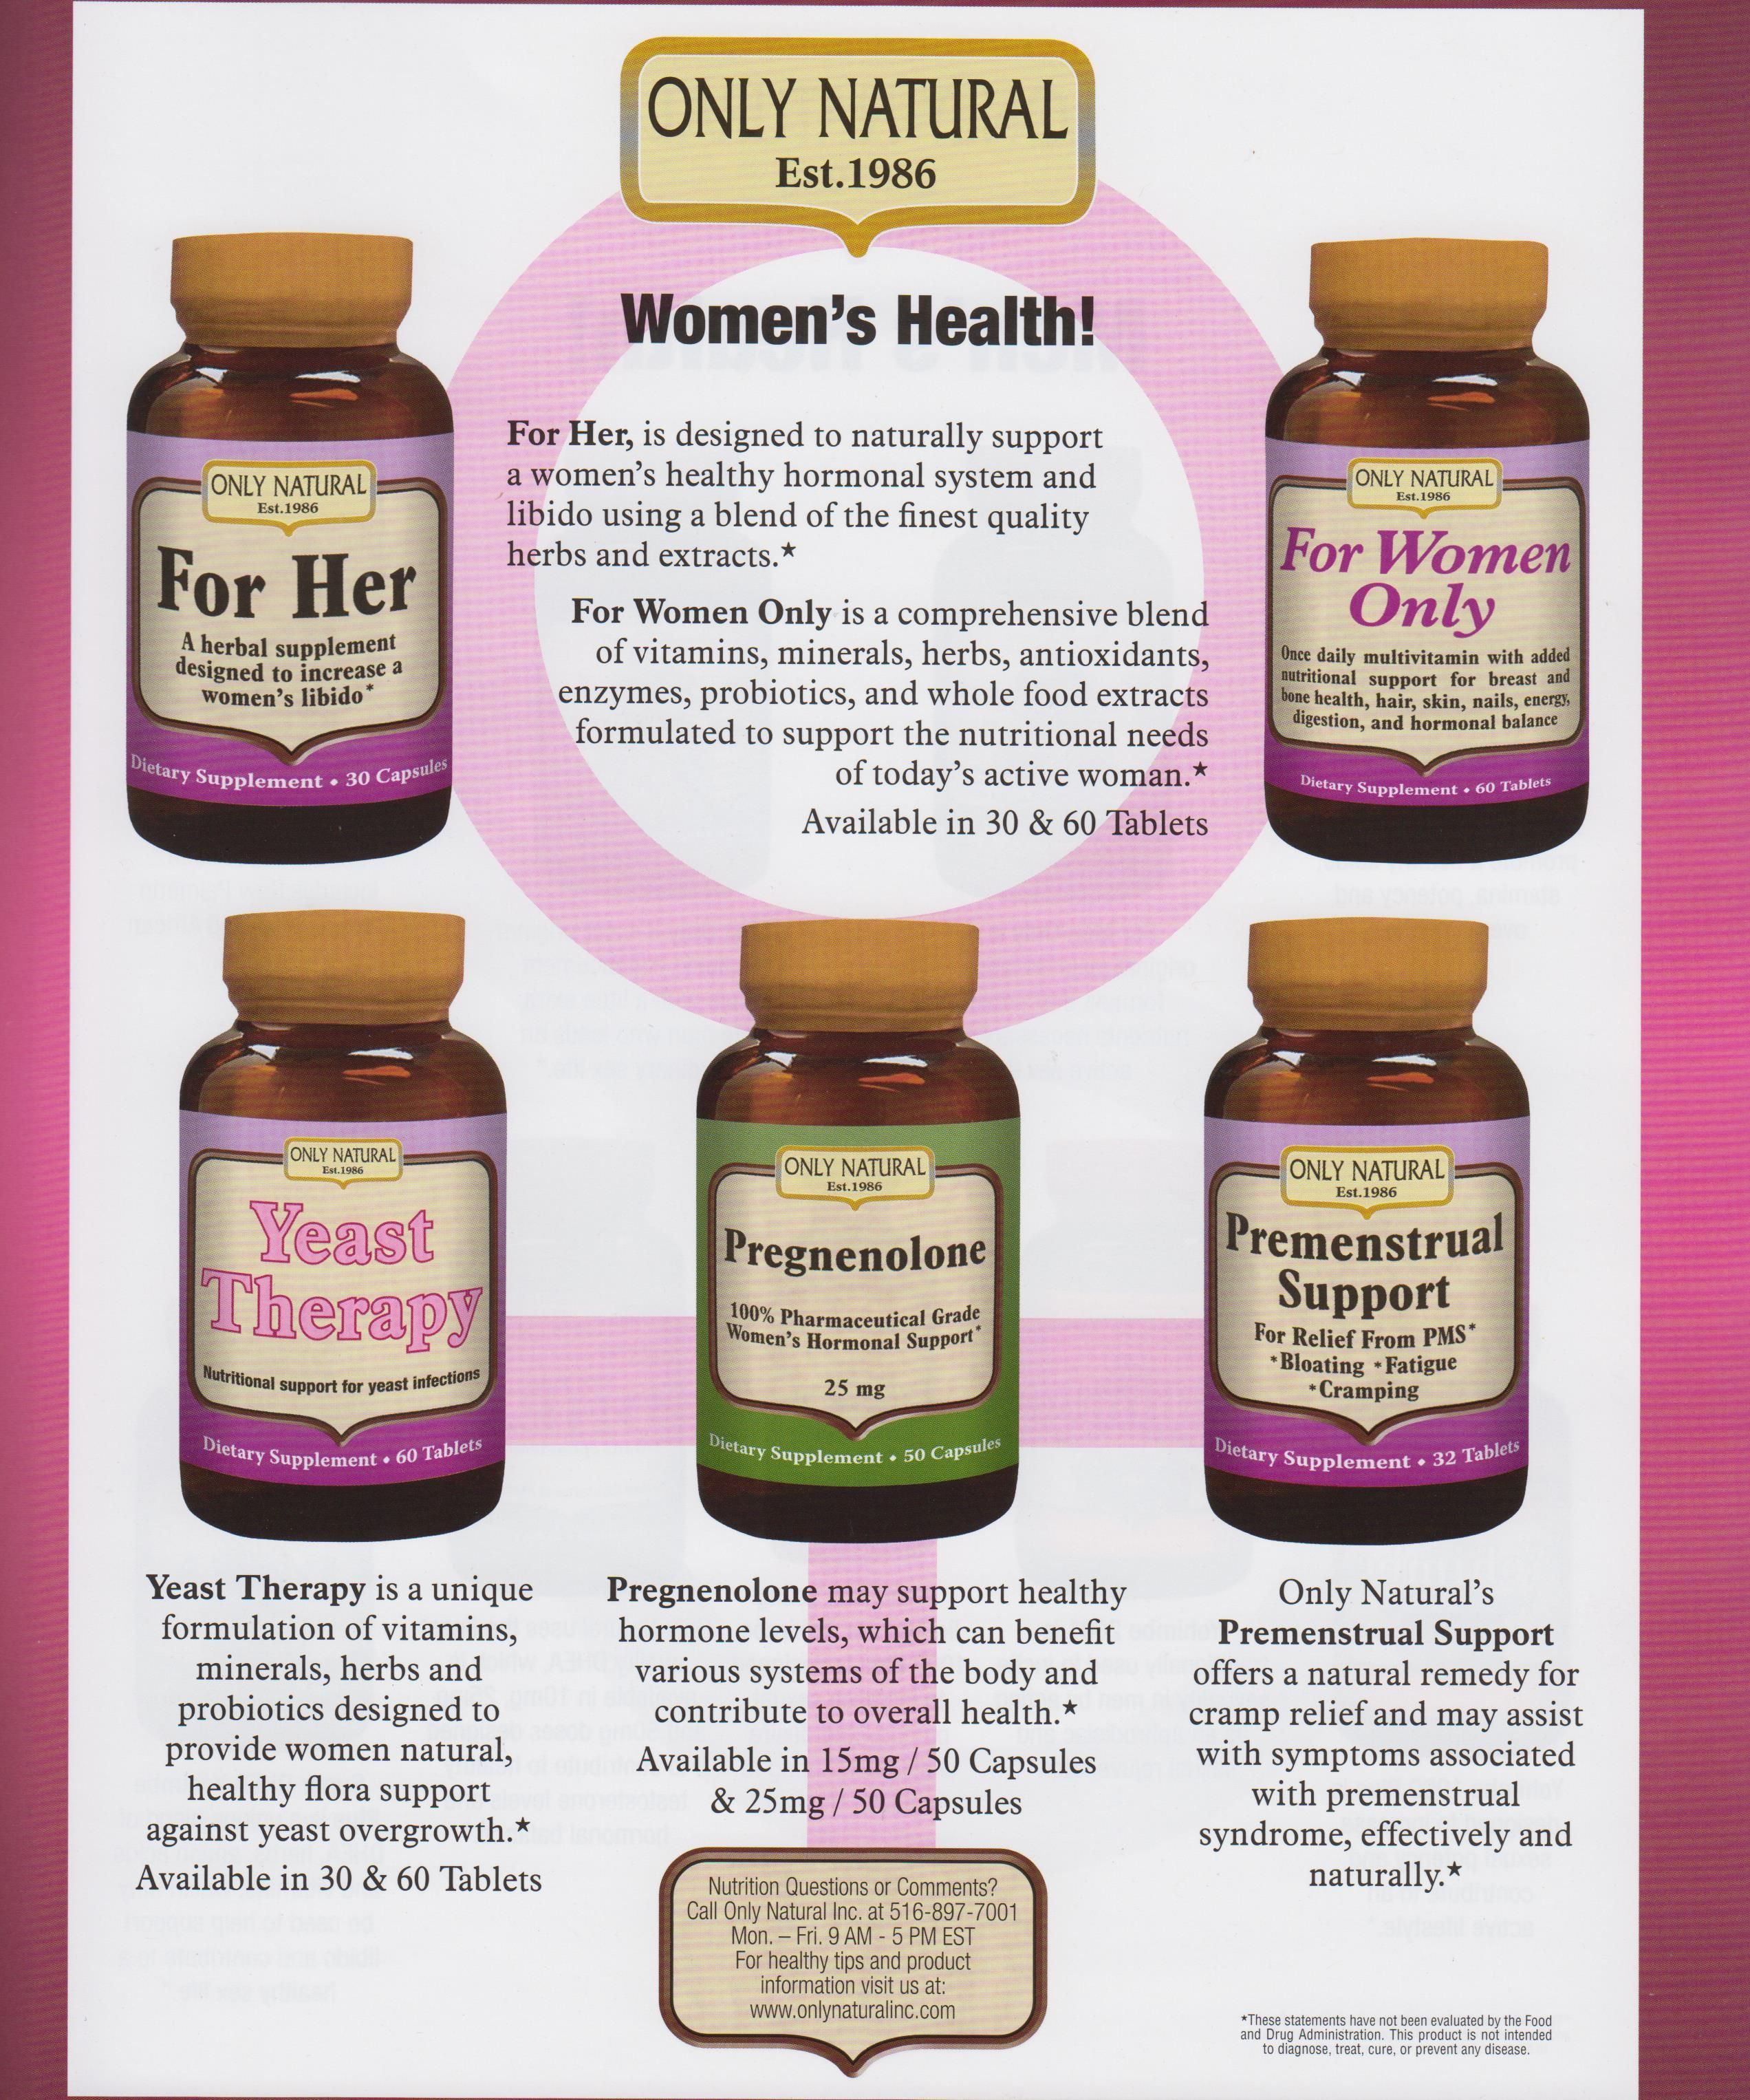 WomenS Health Product Flyer  Only Natural Product Flyers